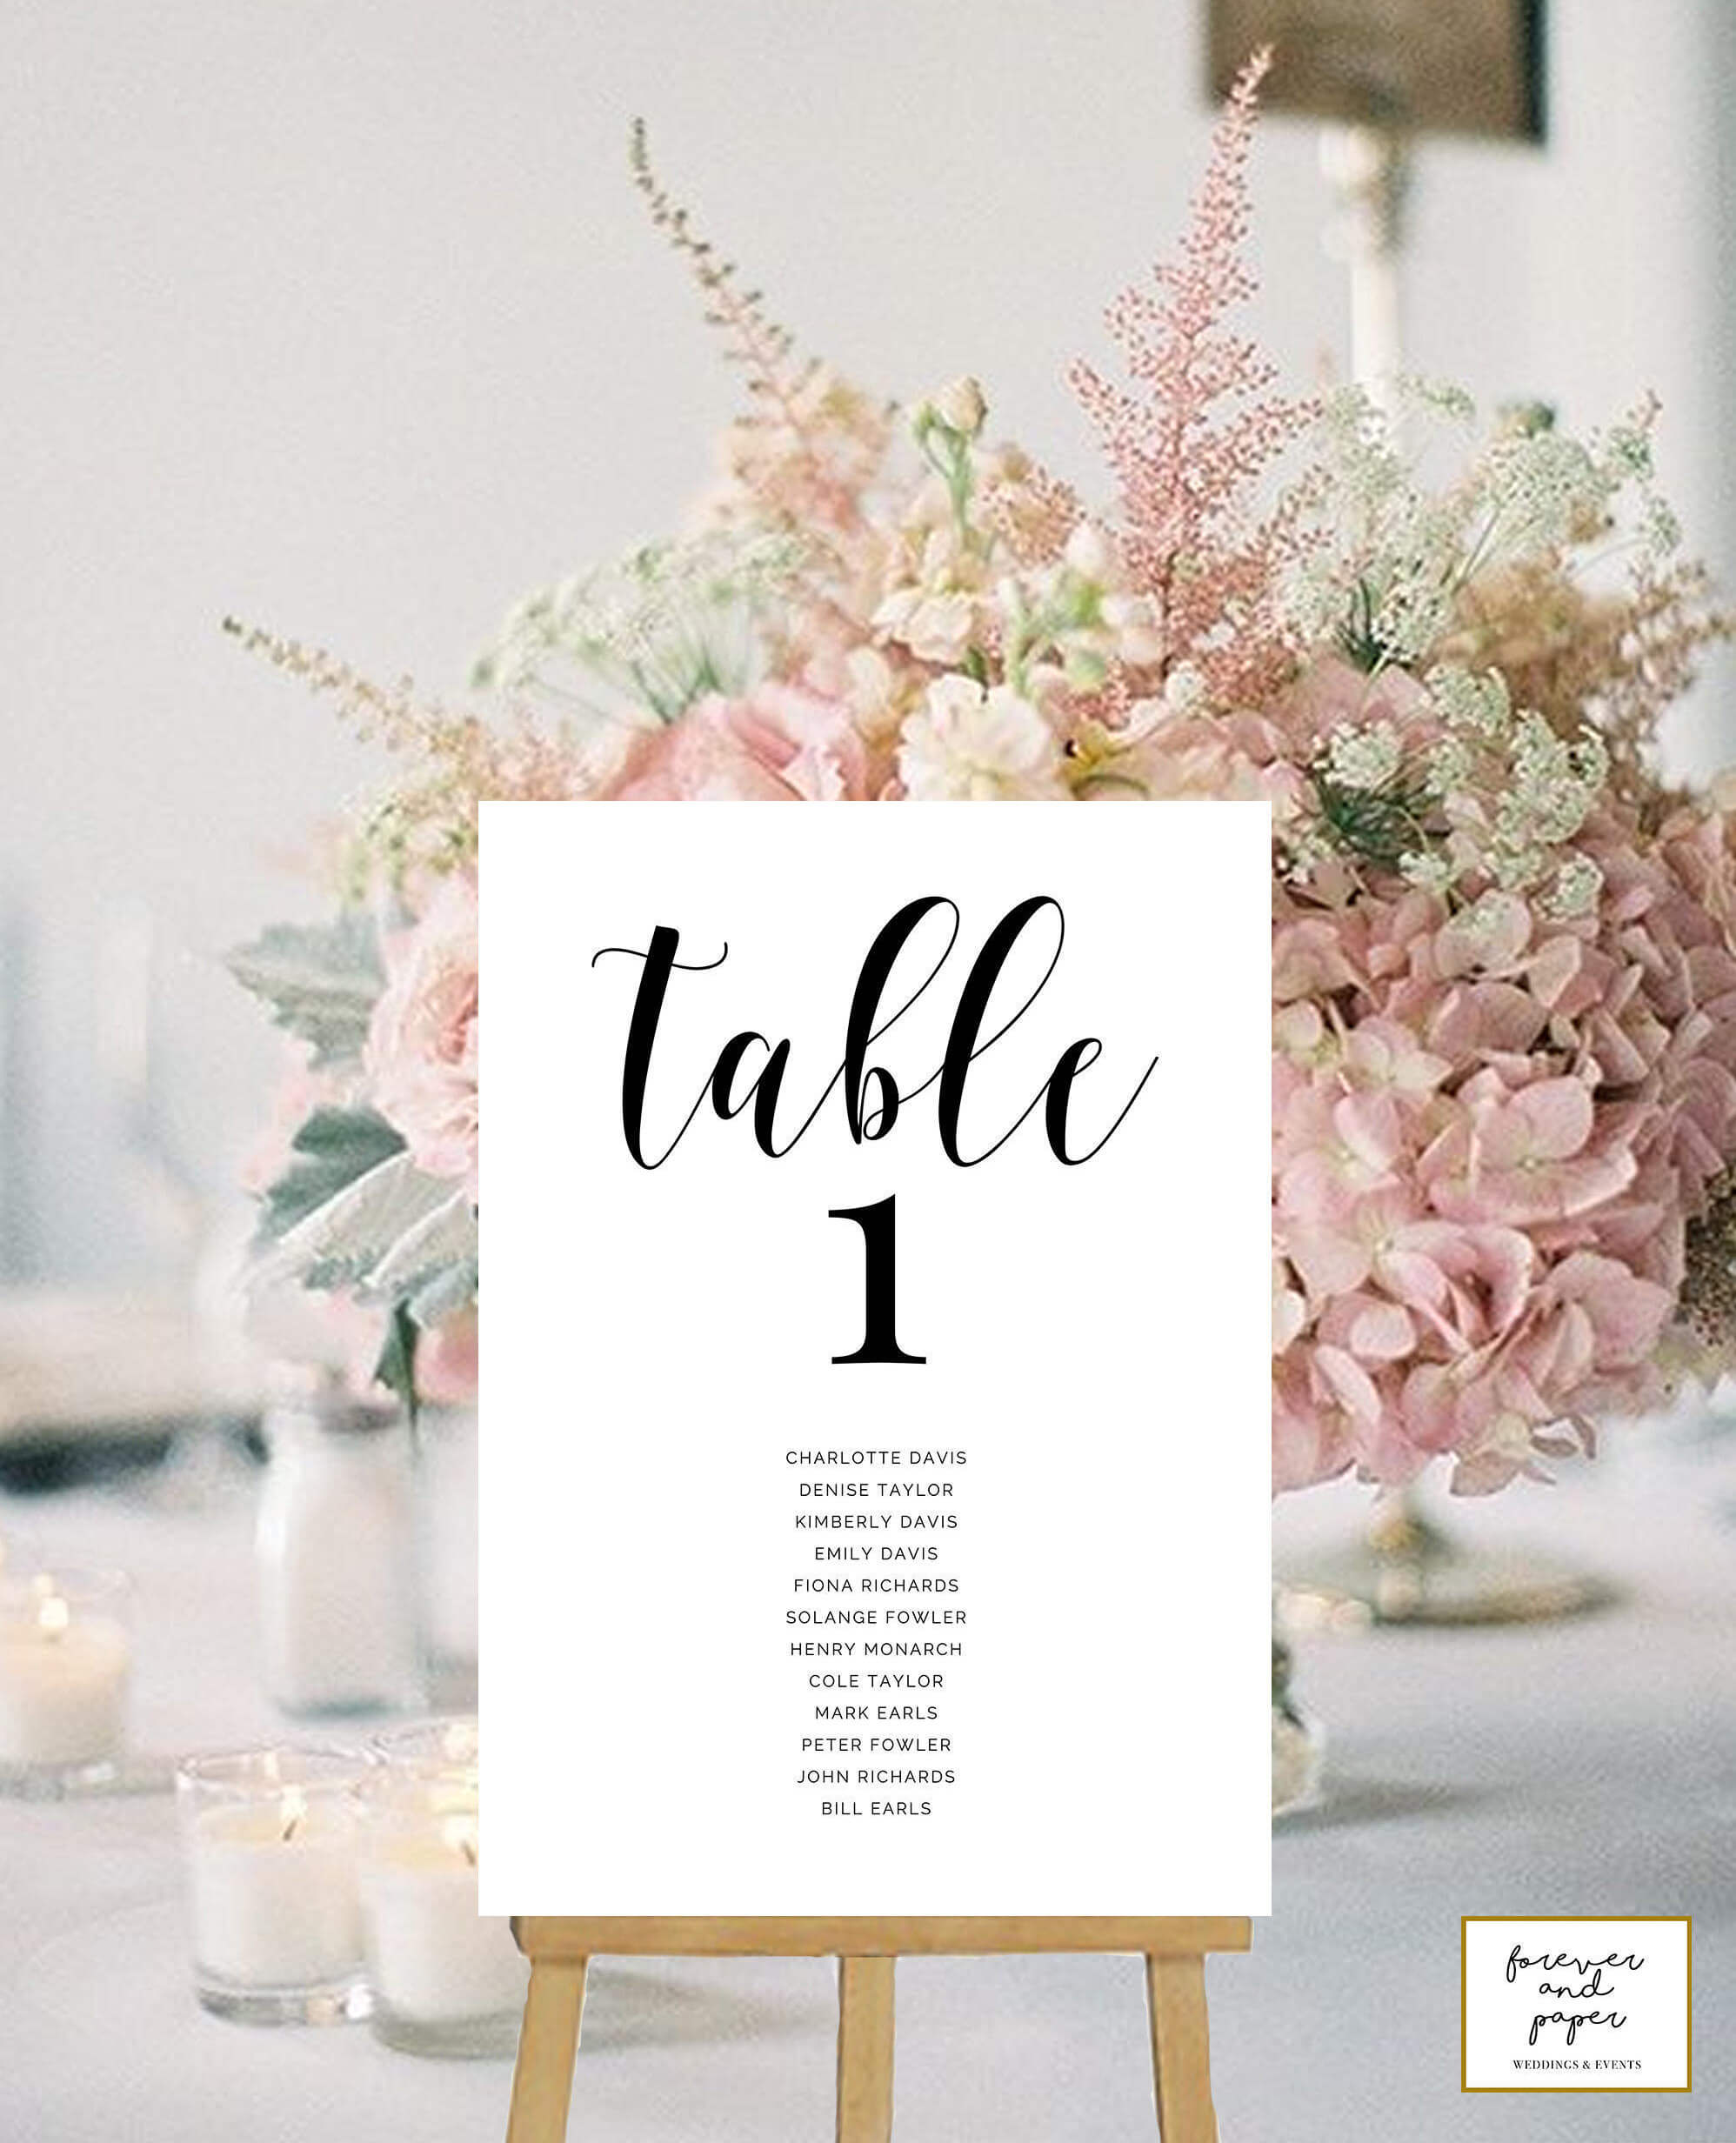 Table Numbers Cards, Wedding Table Numbers Printable, Table Numbers With  Names, Table Card Template, Elegant, Modern, Table Cards Wedding throughout Table Number Cards Template